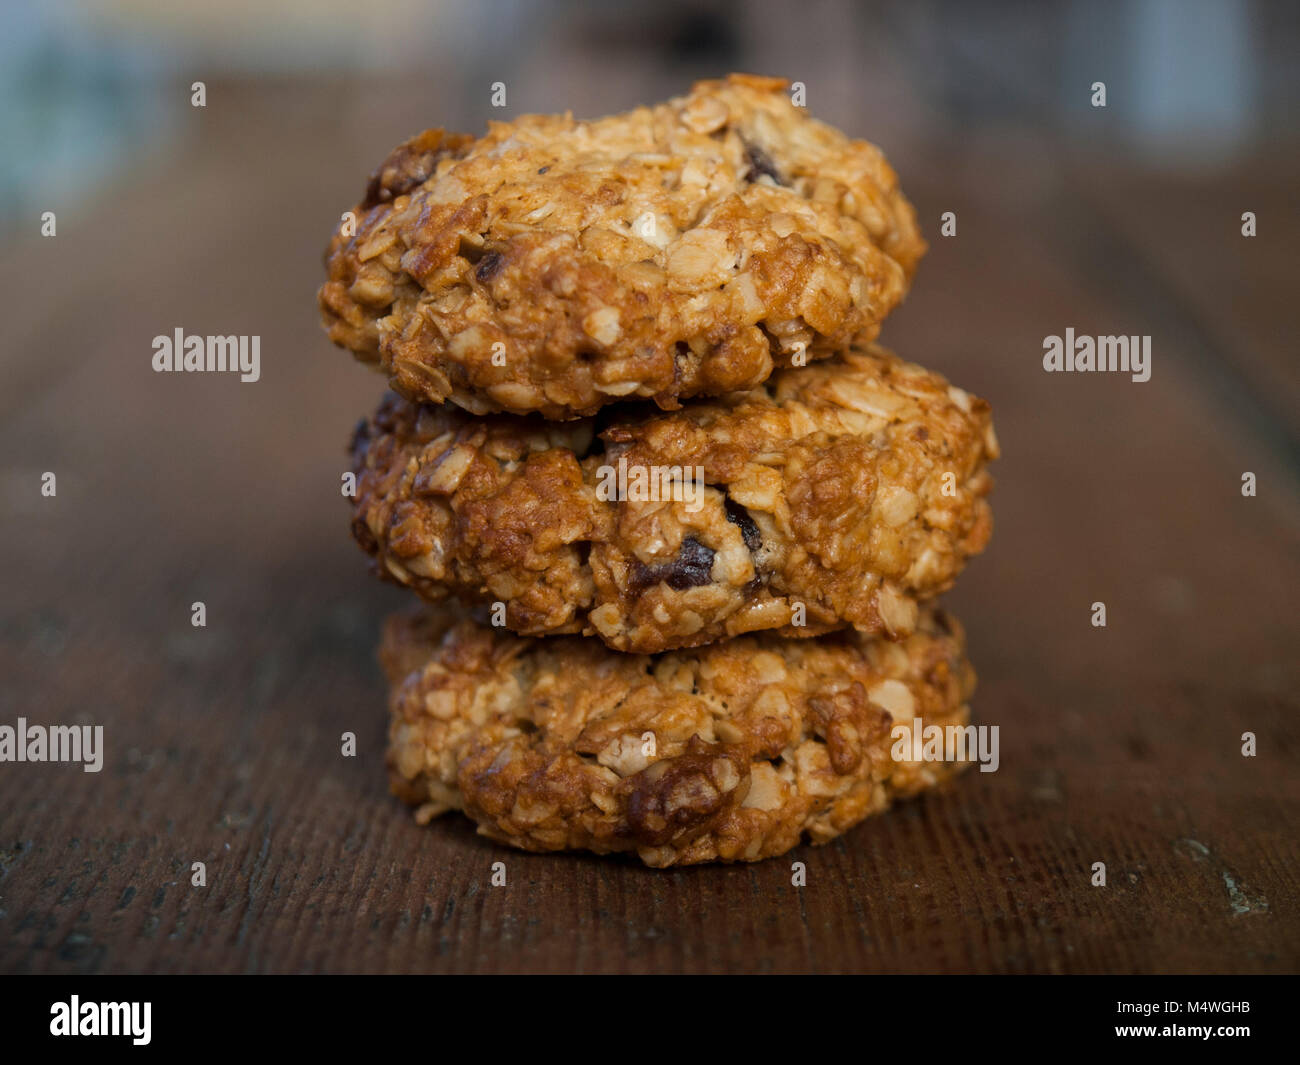 Close up view of home made oat biscuits. Natural background. - Stock Image